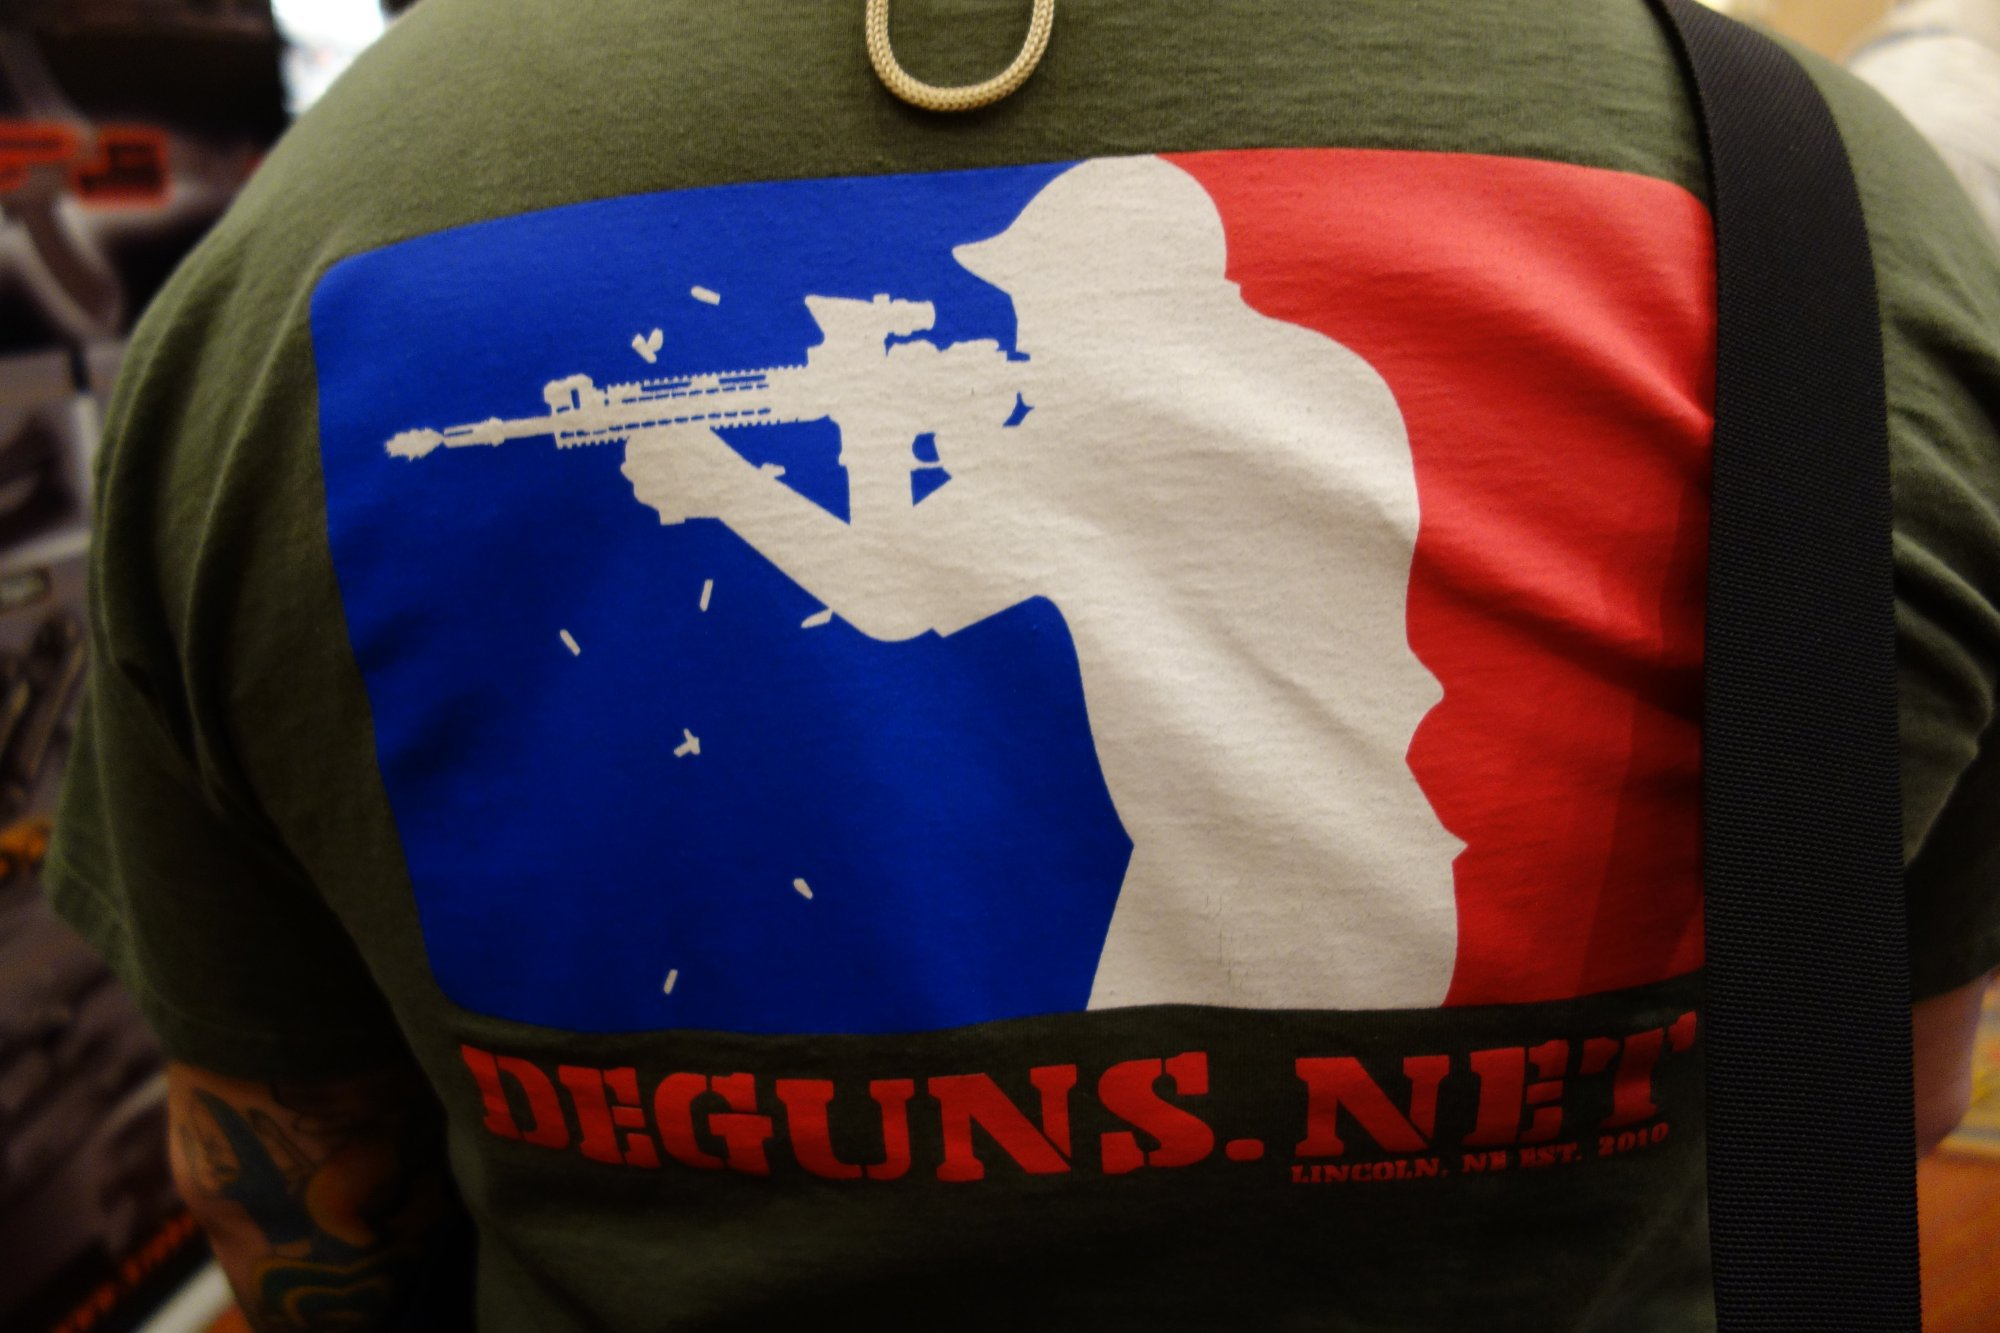 Cool T-Shirt Alert: DEGUNS.net (Discount Enterprises Guns) Tactical-Shooter-Firing-AR-15-Carbine Logo T-Shirt